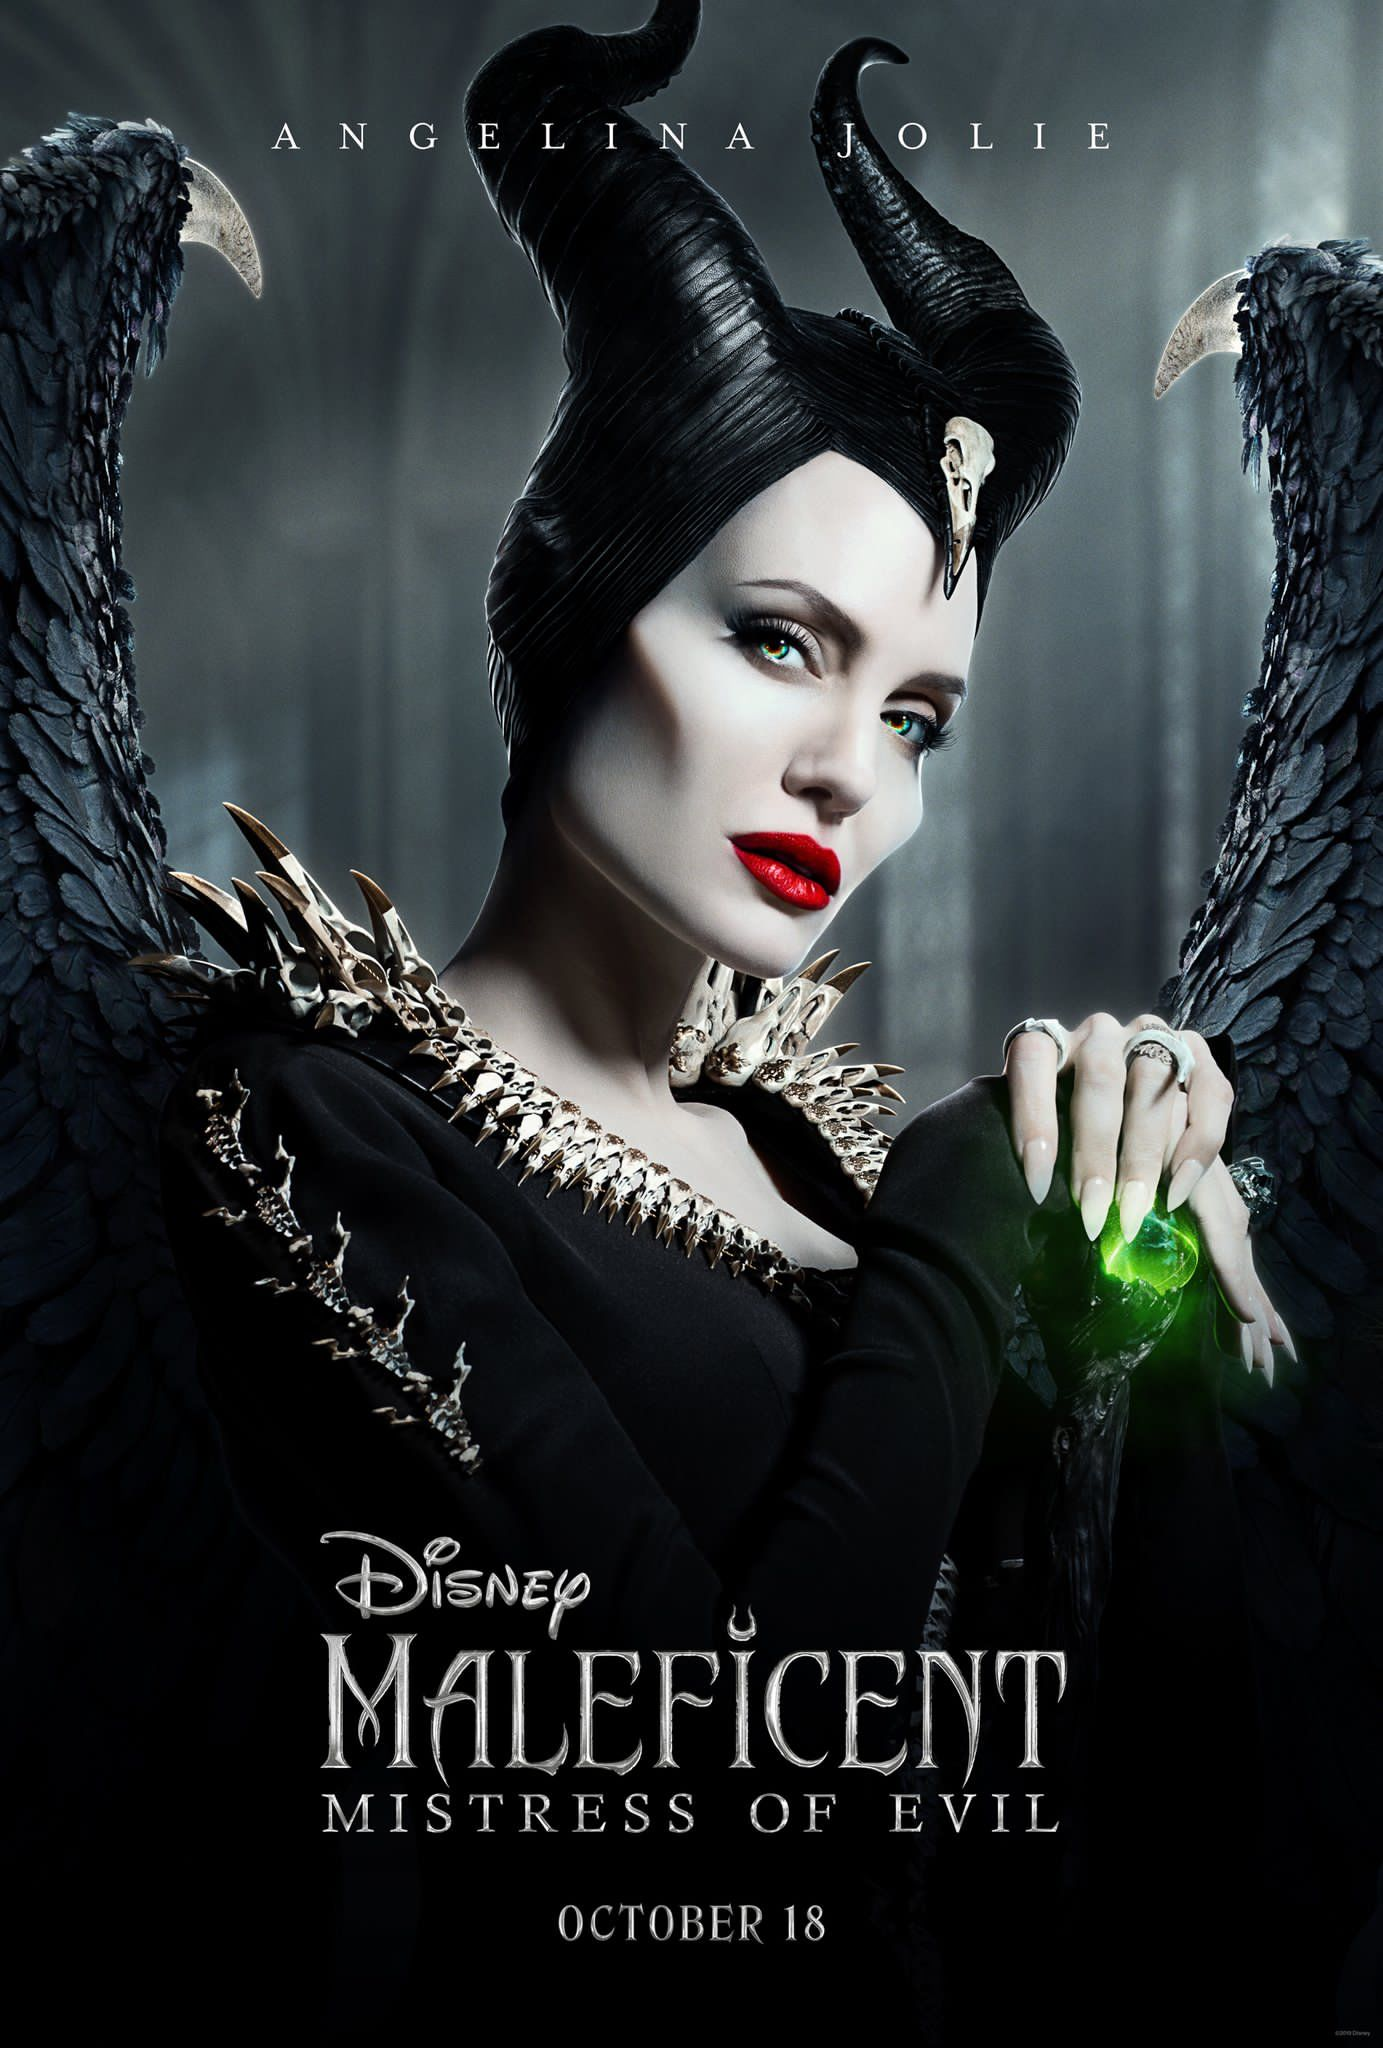 Pin By Anna Sokol On Maleficent Watch Maleficent Maleficent Disney Maleficent